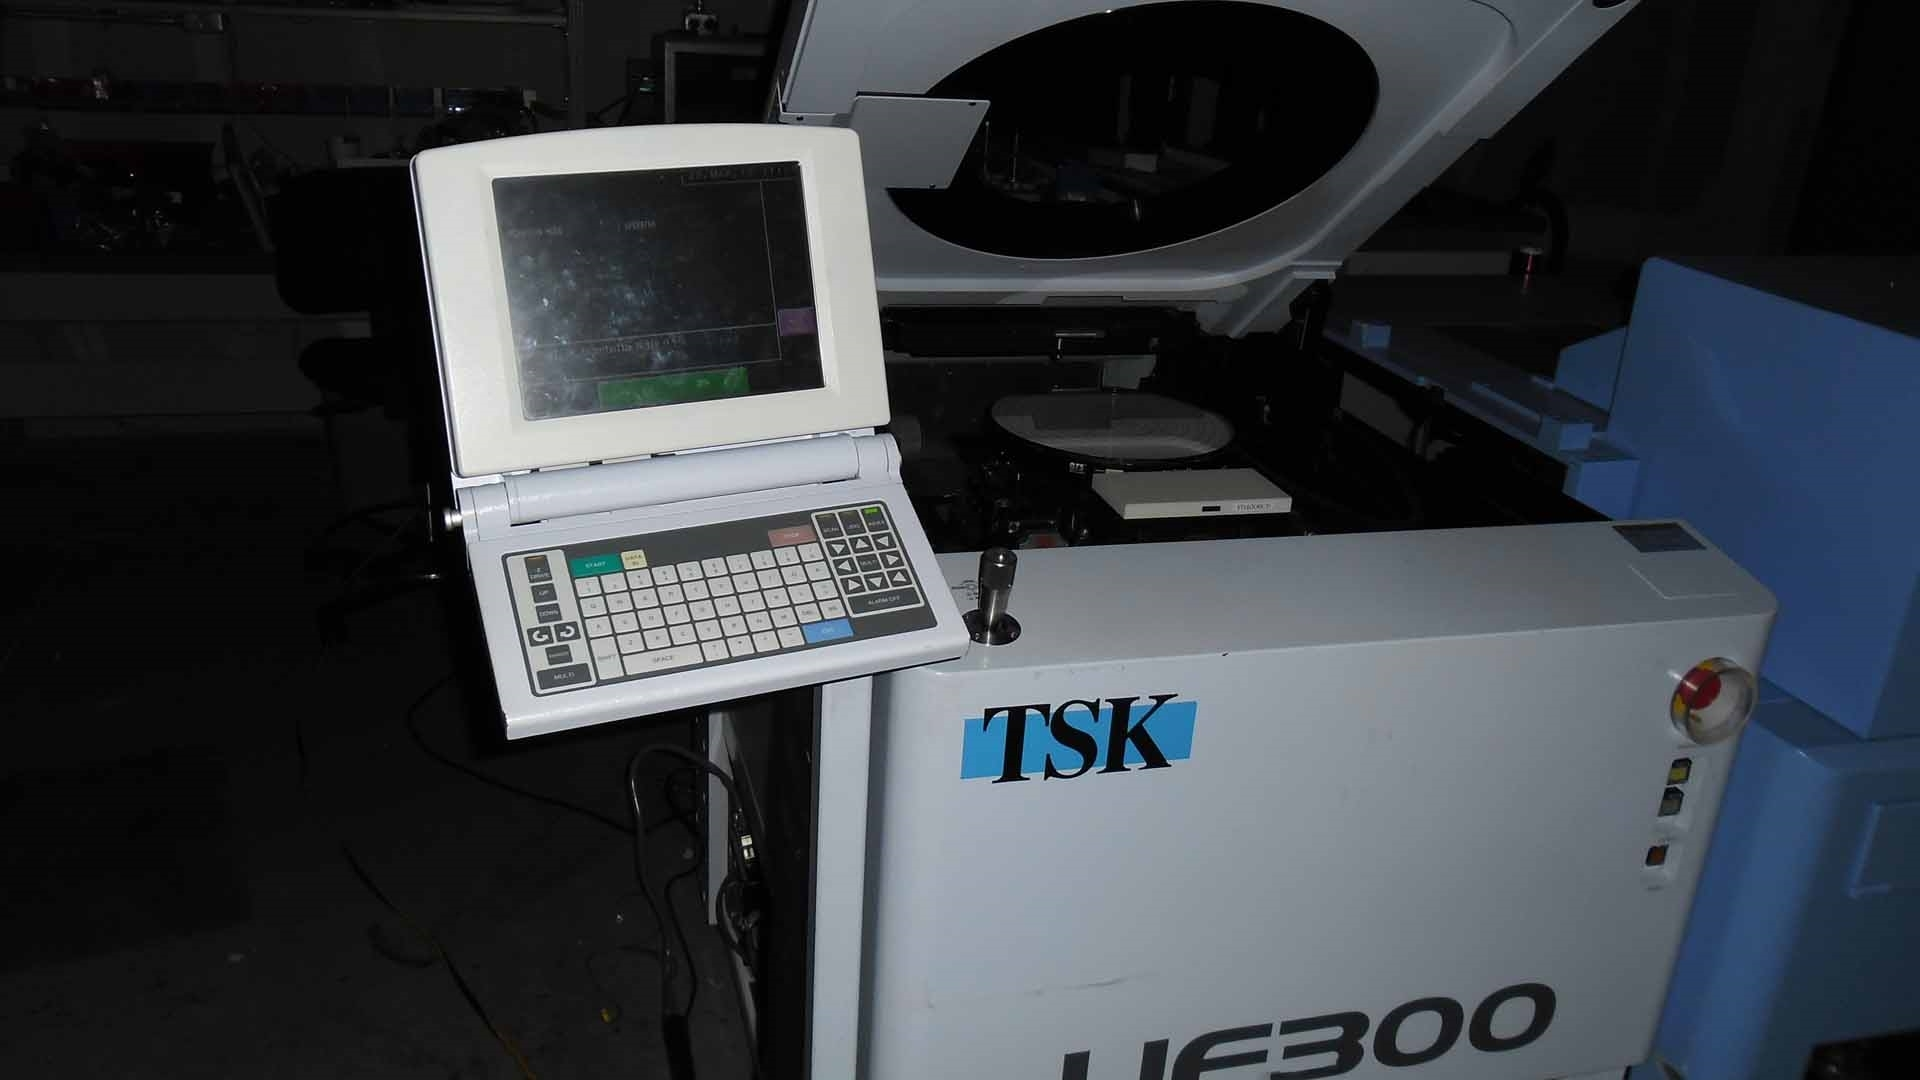 ACCRETECH / TSK UF 300 for sale (used, price) #9205929, 1999 > buy from CAE